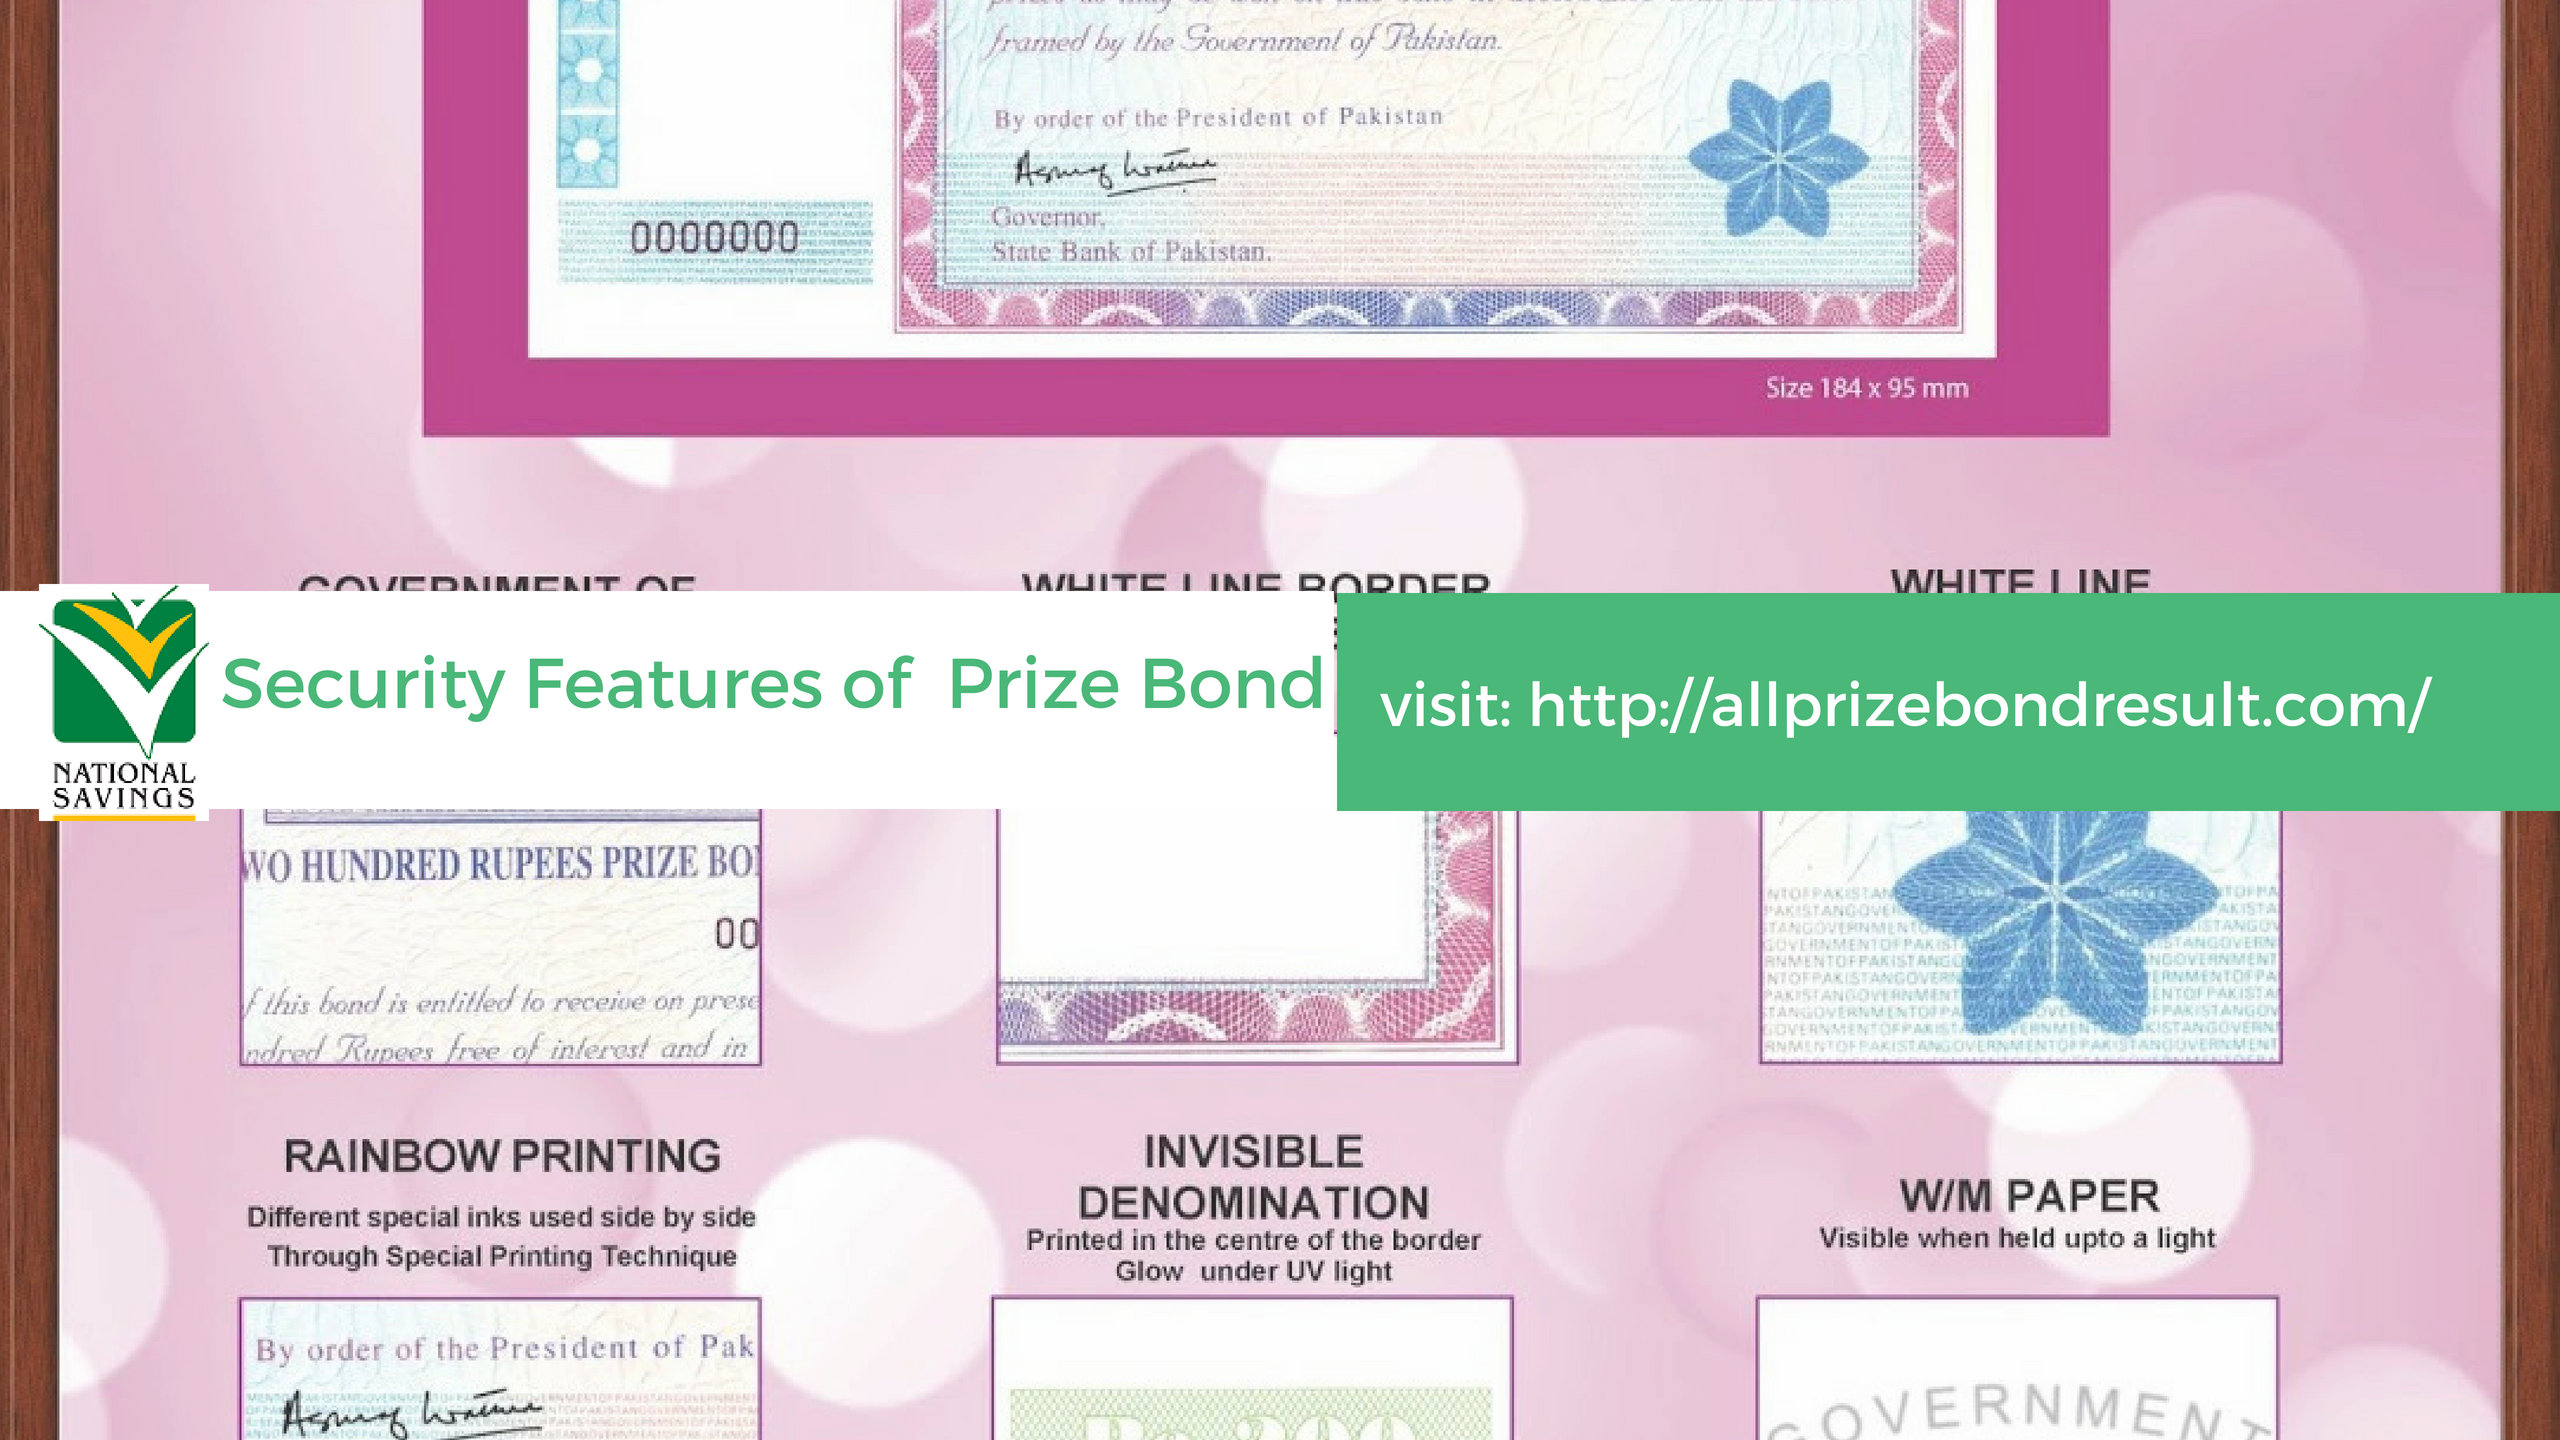 Prize bond Security Features